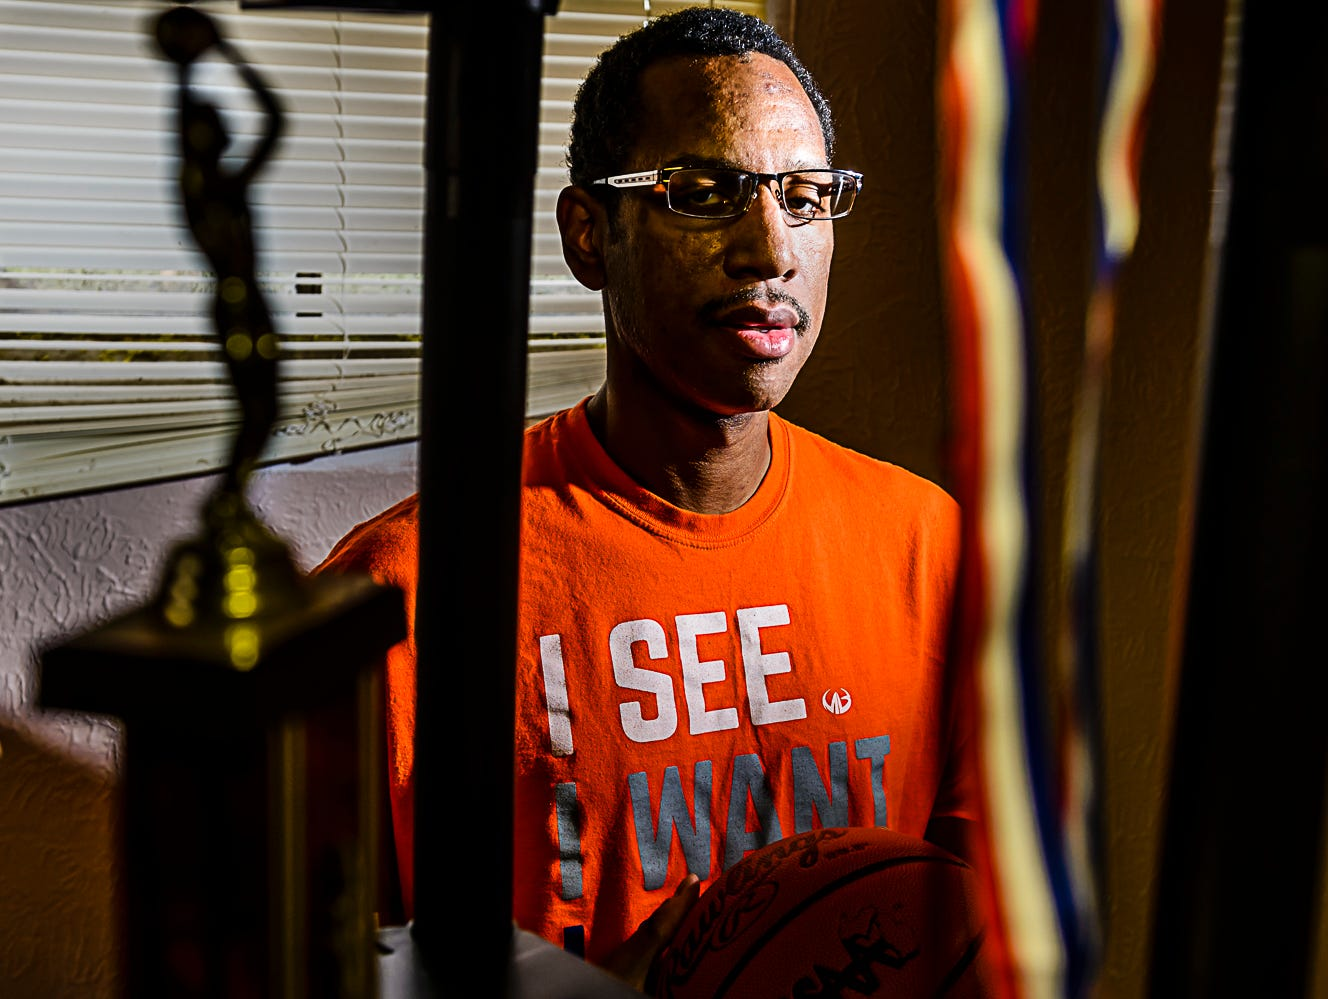 Former Waverly Girl's Basketball Head Coach ,T.J. Hawkins, stands in a stoarge room where he has moved all his athletic paraphenalia at his home in Lansing Thursday January 19, 2017. Hawkins suffered a stroke that forced him to leave his Waverly coaching position and is struggling to recover and regain a coaching position. KEVIN W. FOWLER PHOTO